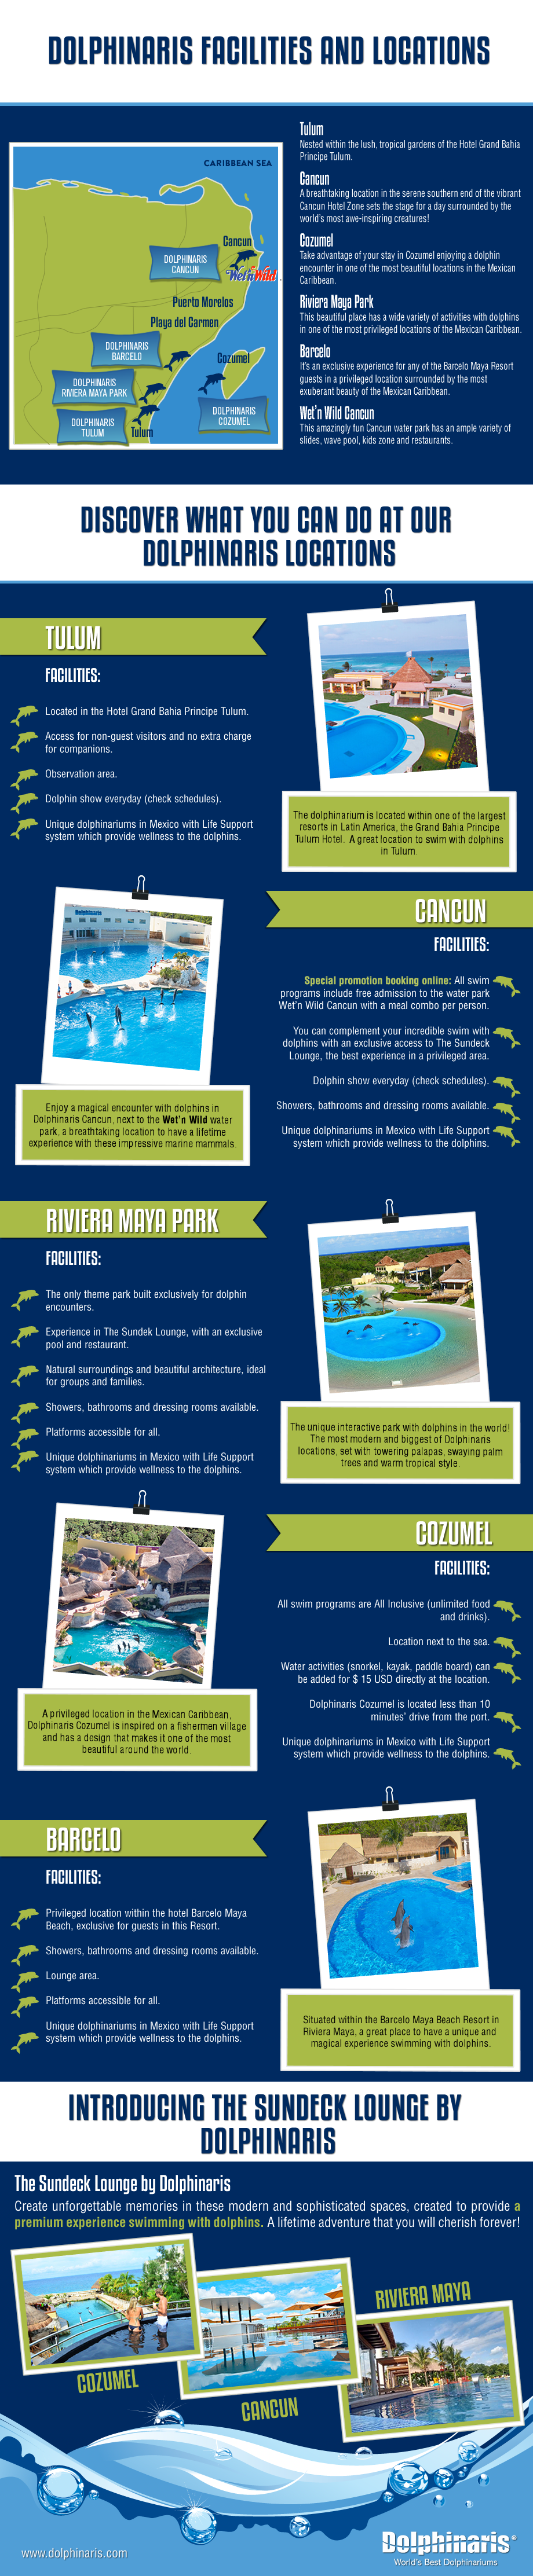 Dolphinaris facilities and locations.